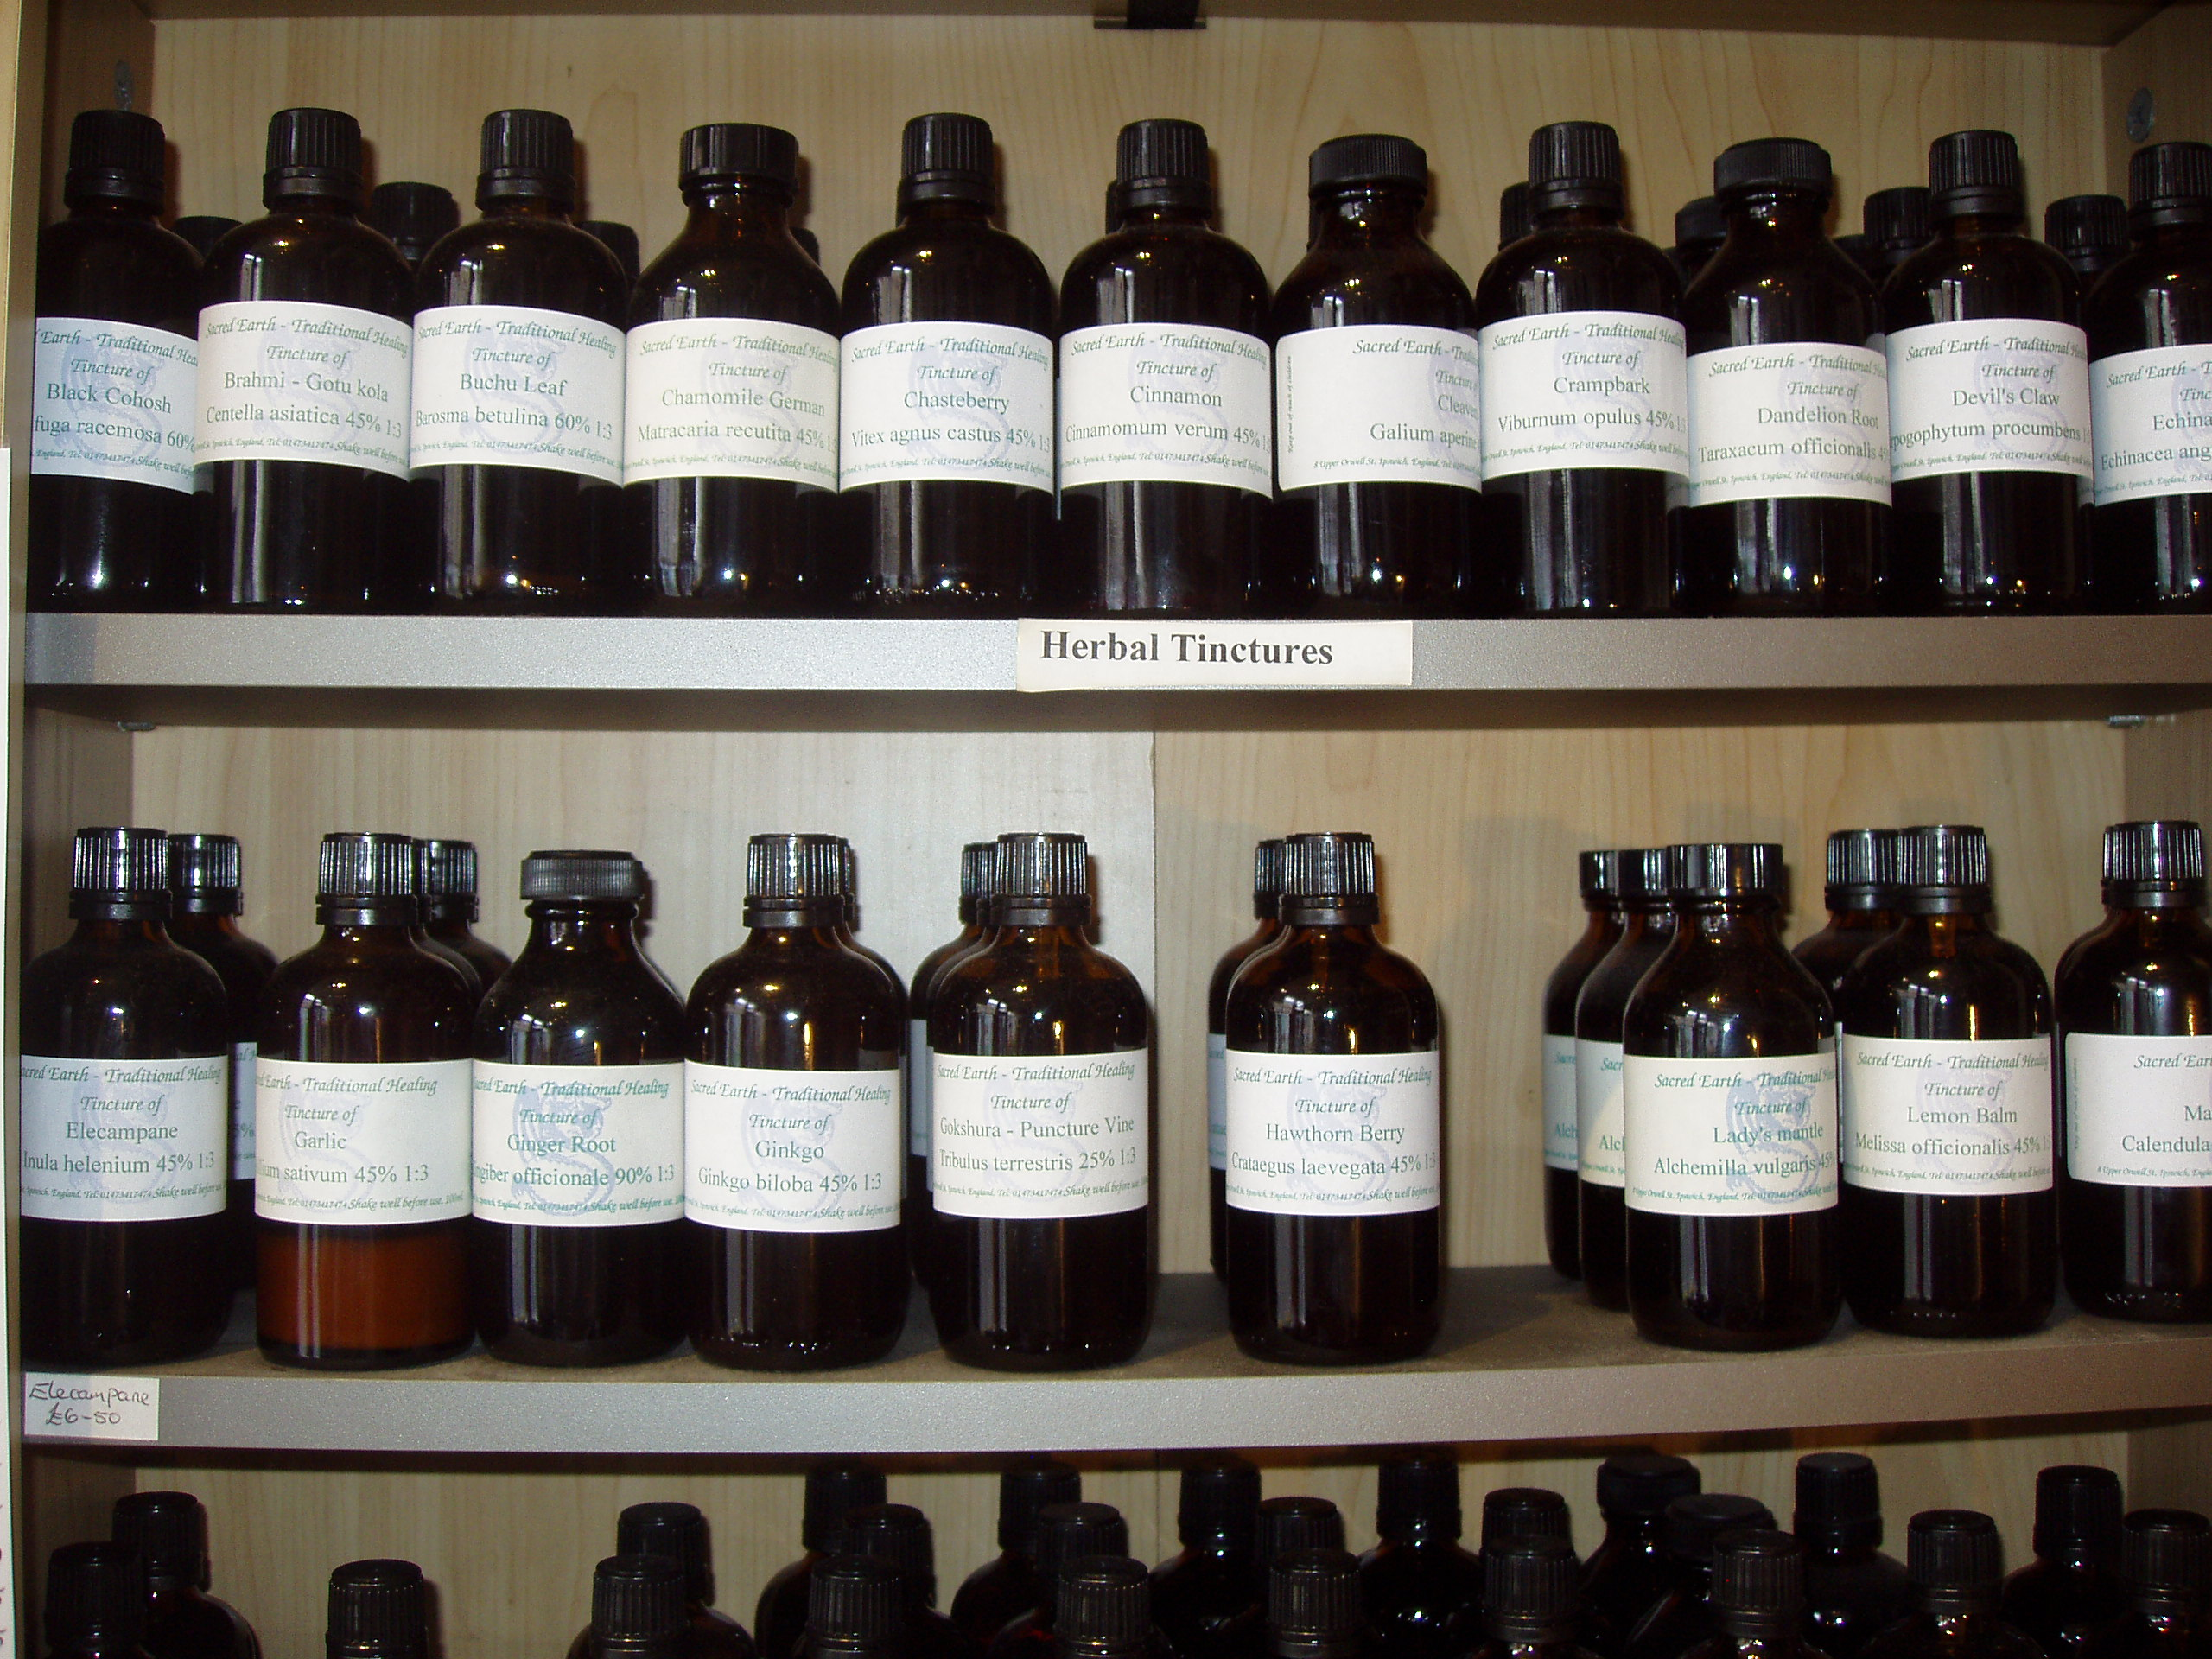 Herbal Tinctures (Mixes) - Cough & Chest soother